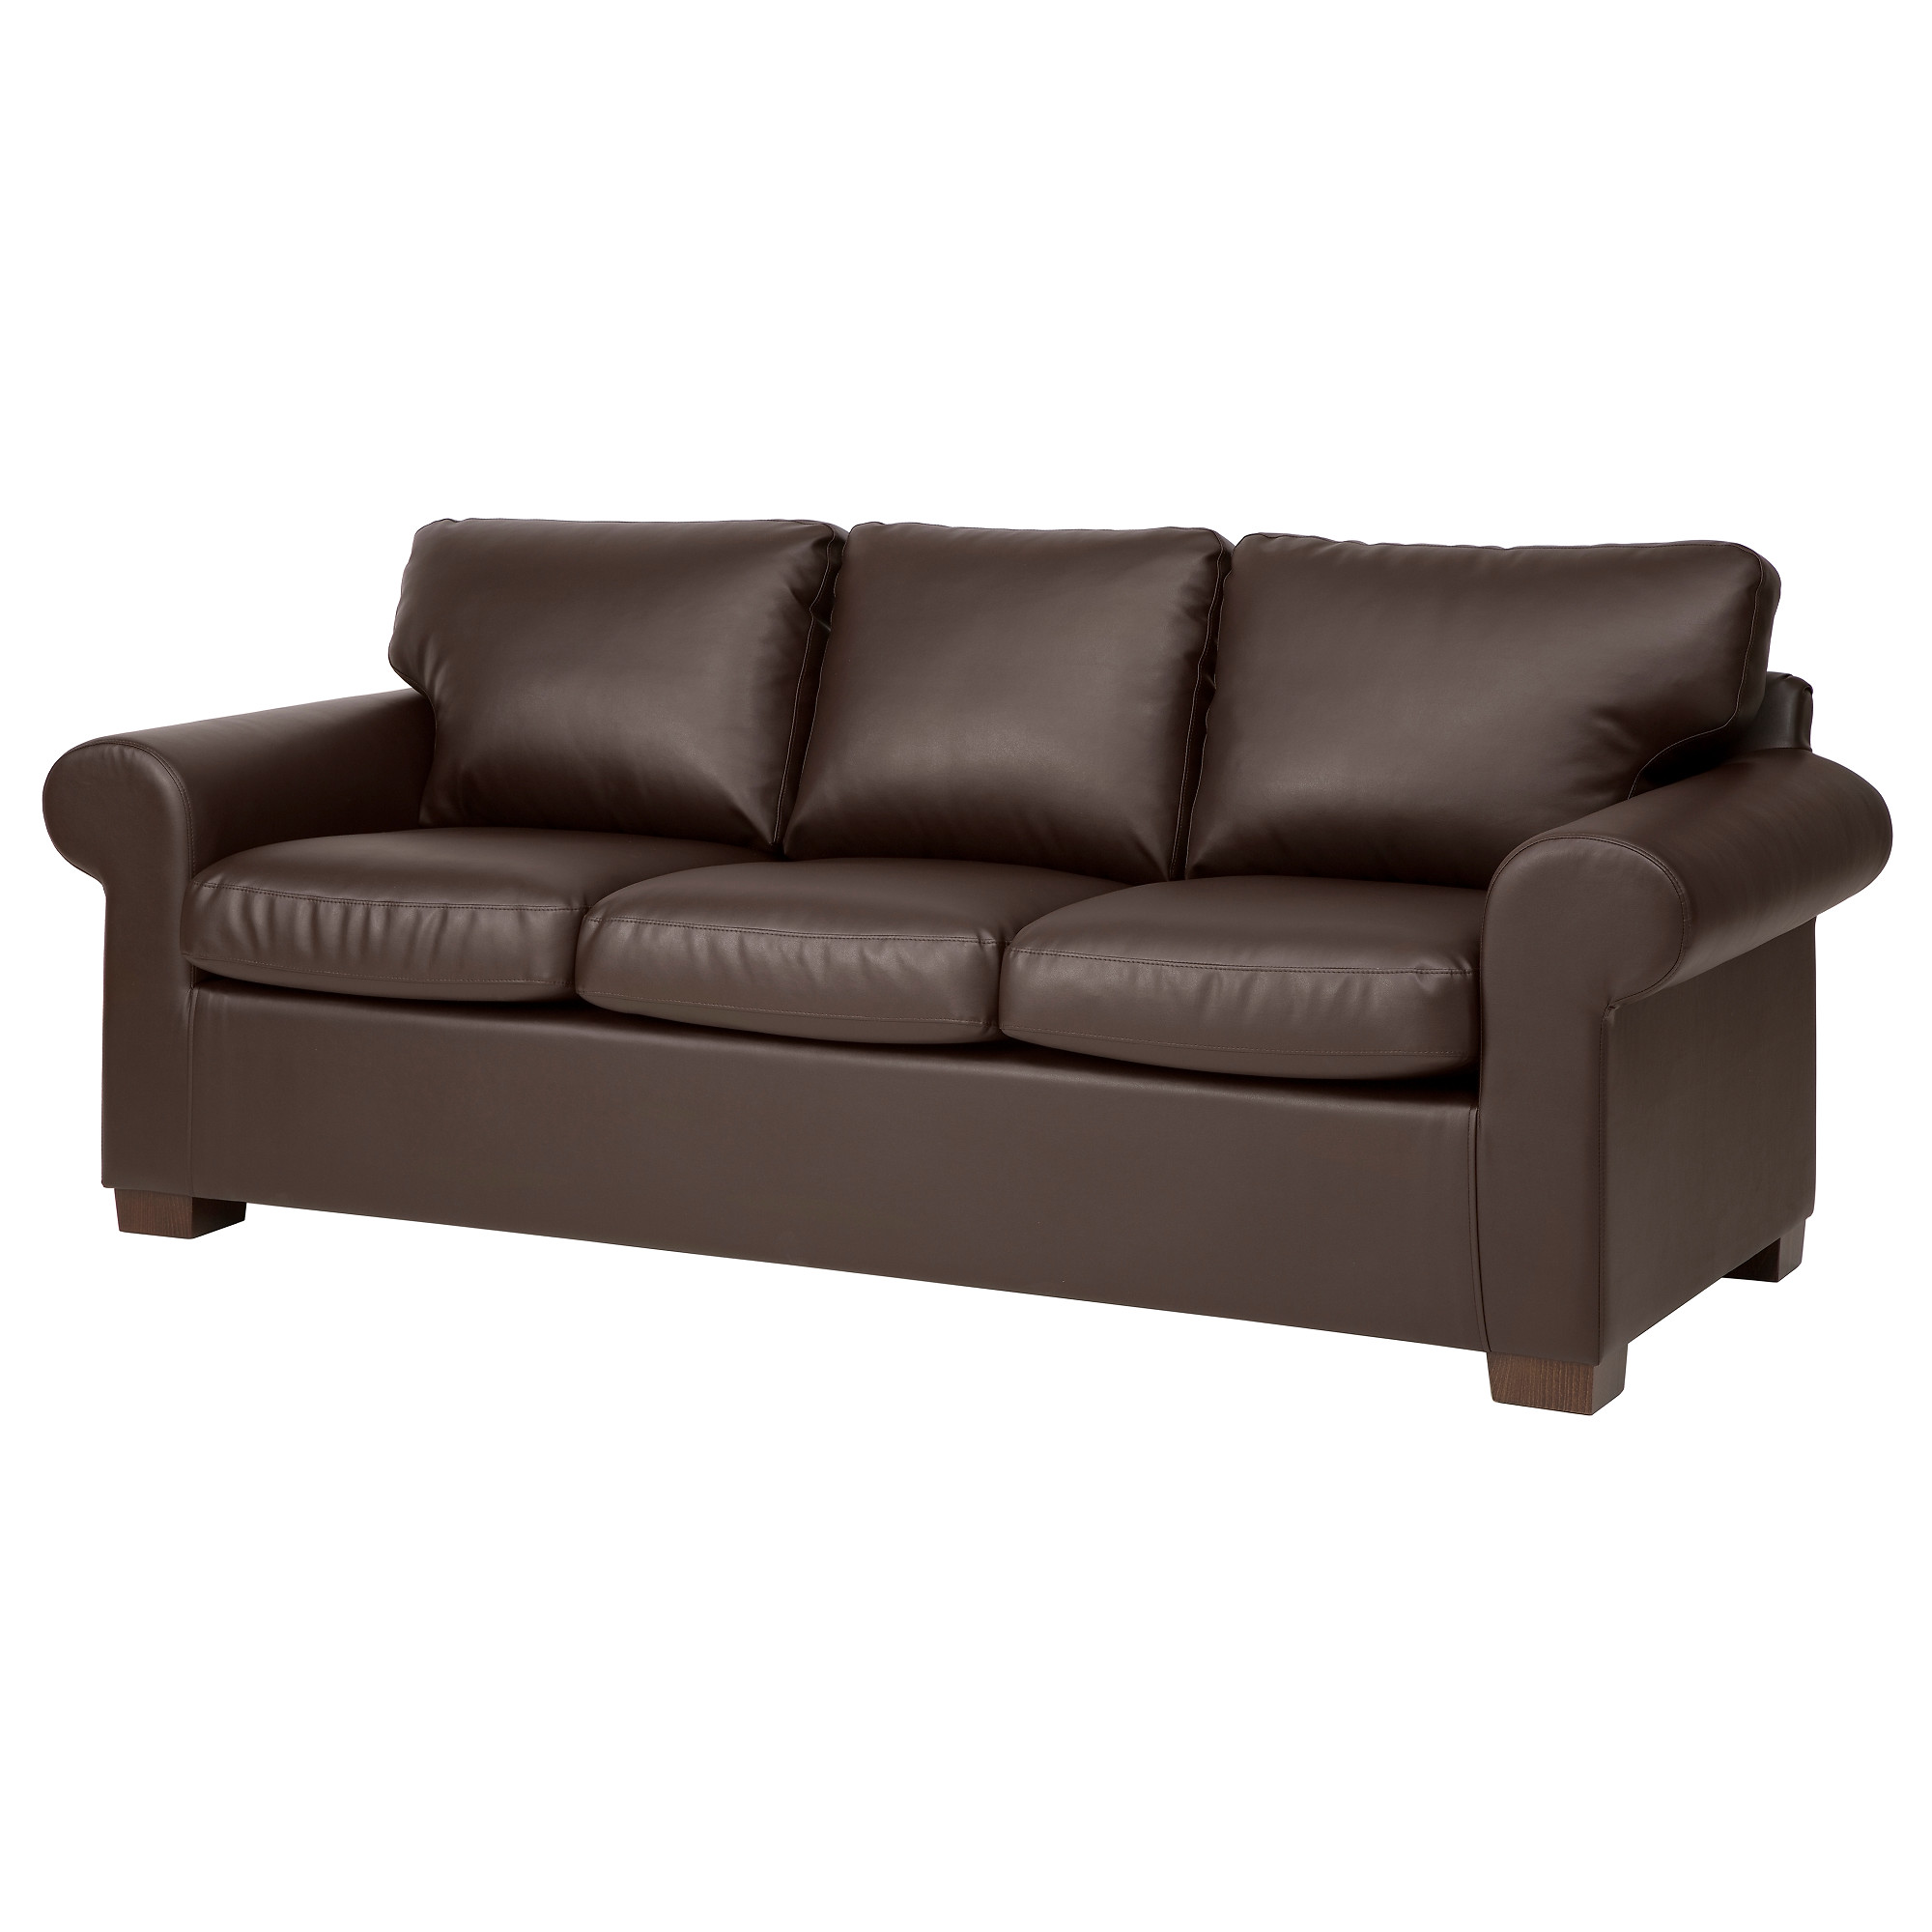 ektorp sofa - kimstad brown - ikea